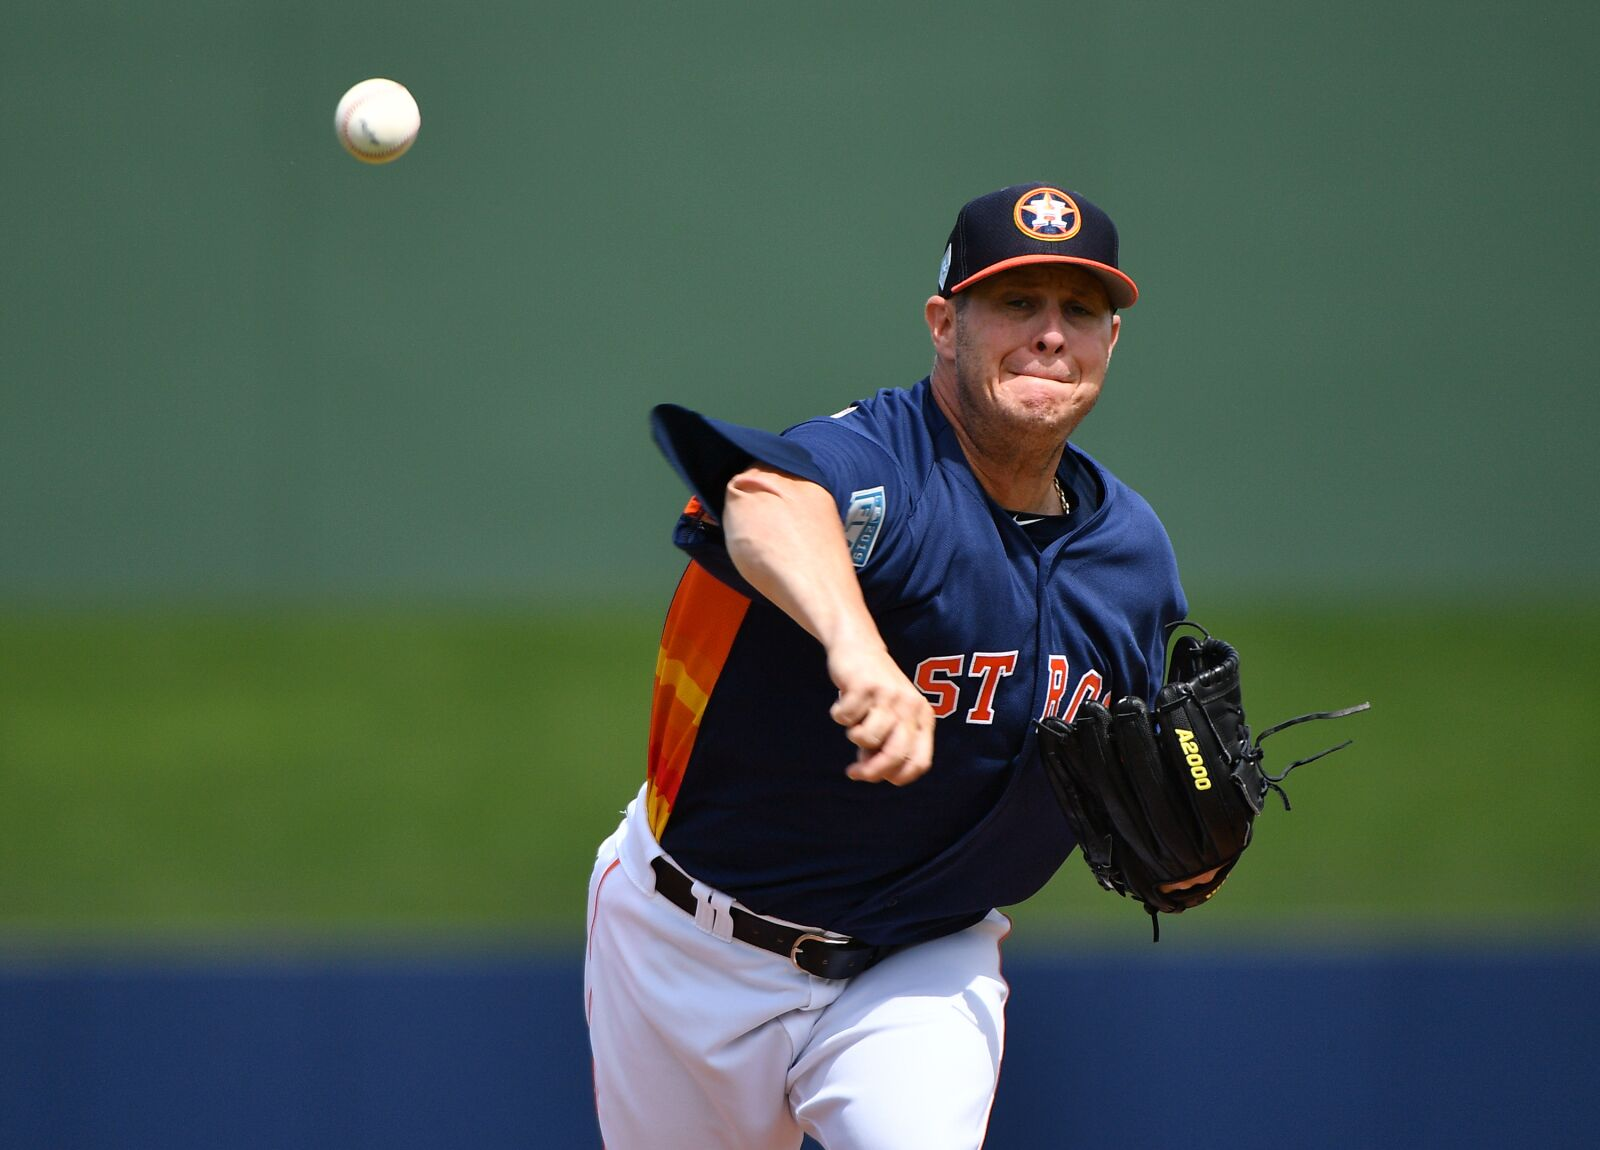 Astros: Peacock making it a one-man race for 5th spot